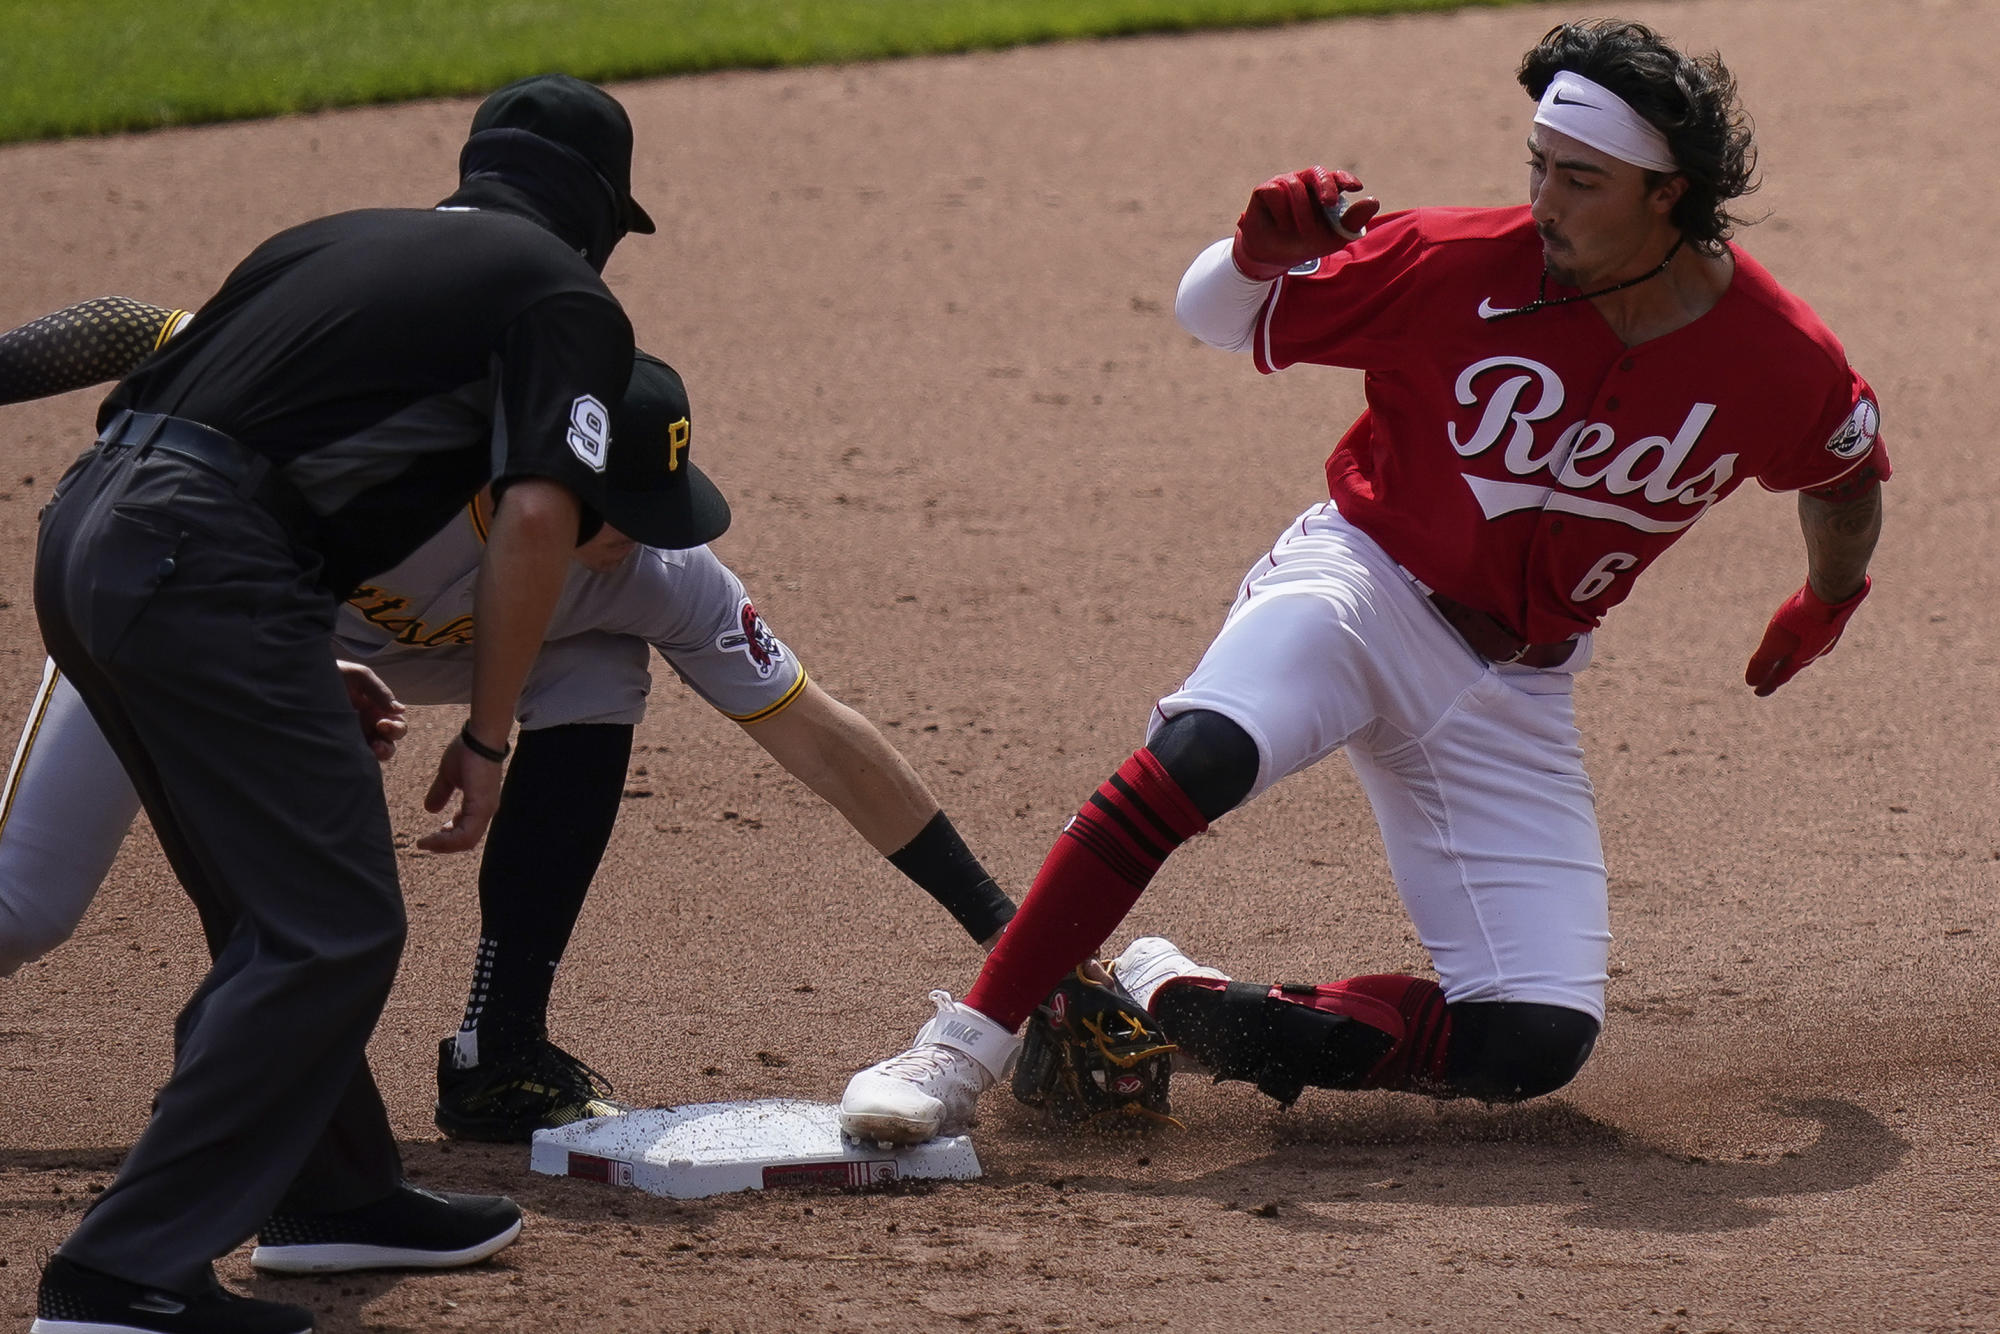 Jonathan India of Reds gets hit by the head and continues playing